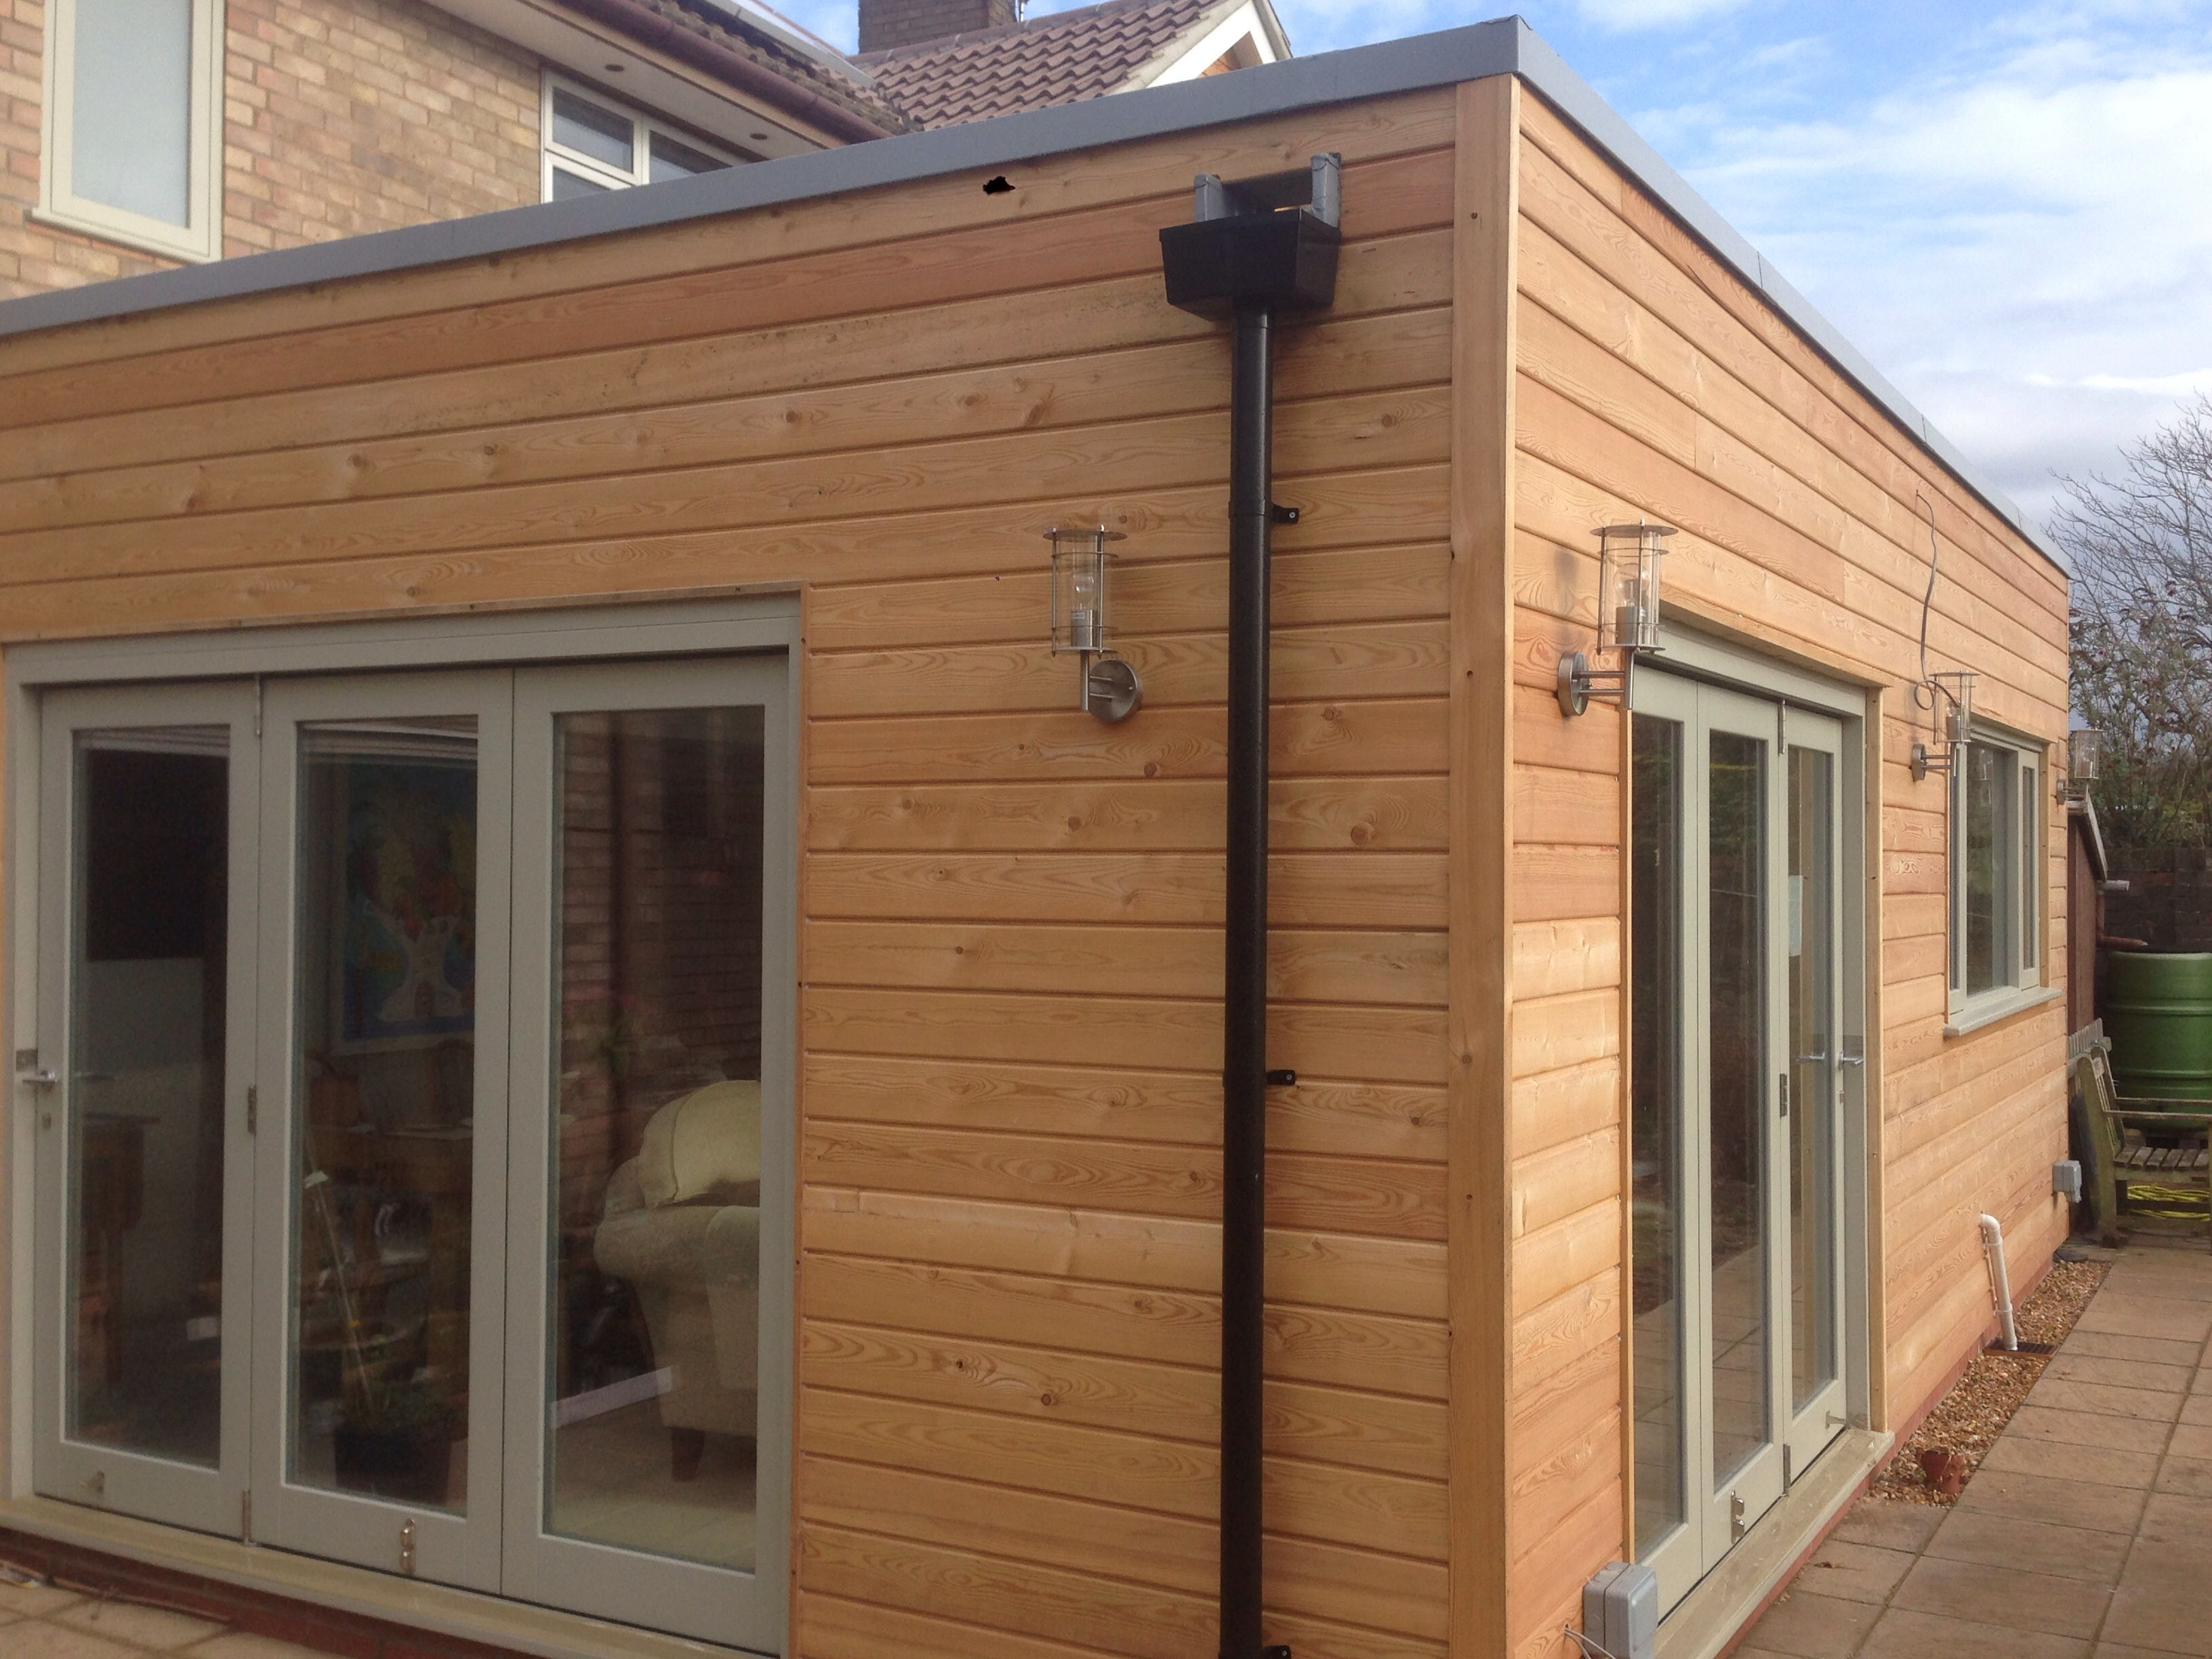 Beaumont road Cambridge, larch clad timber frame extension | Larch ...